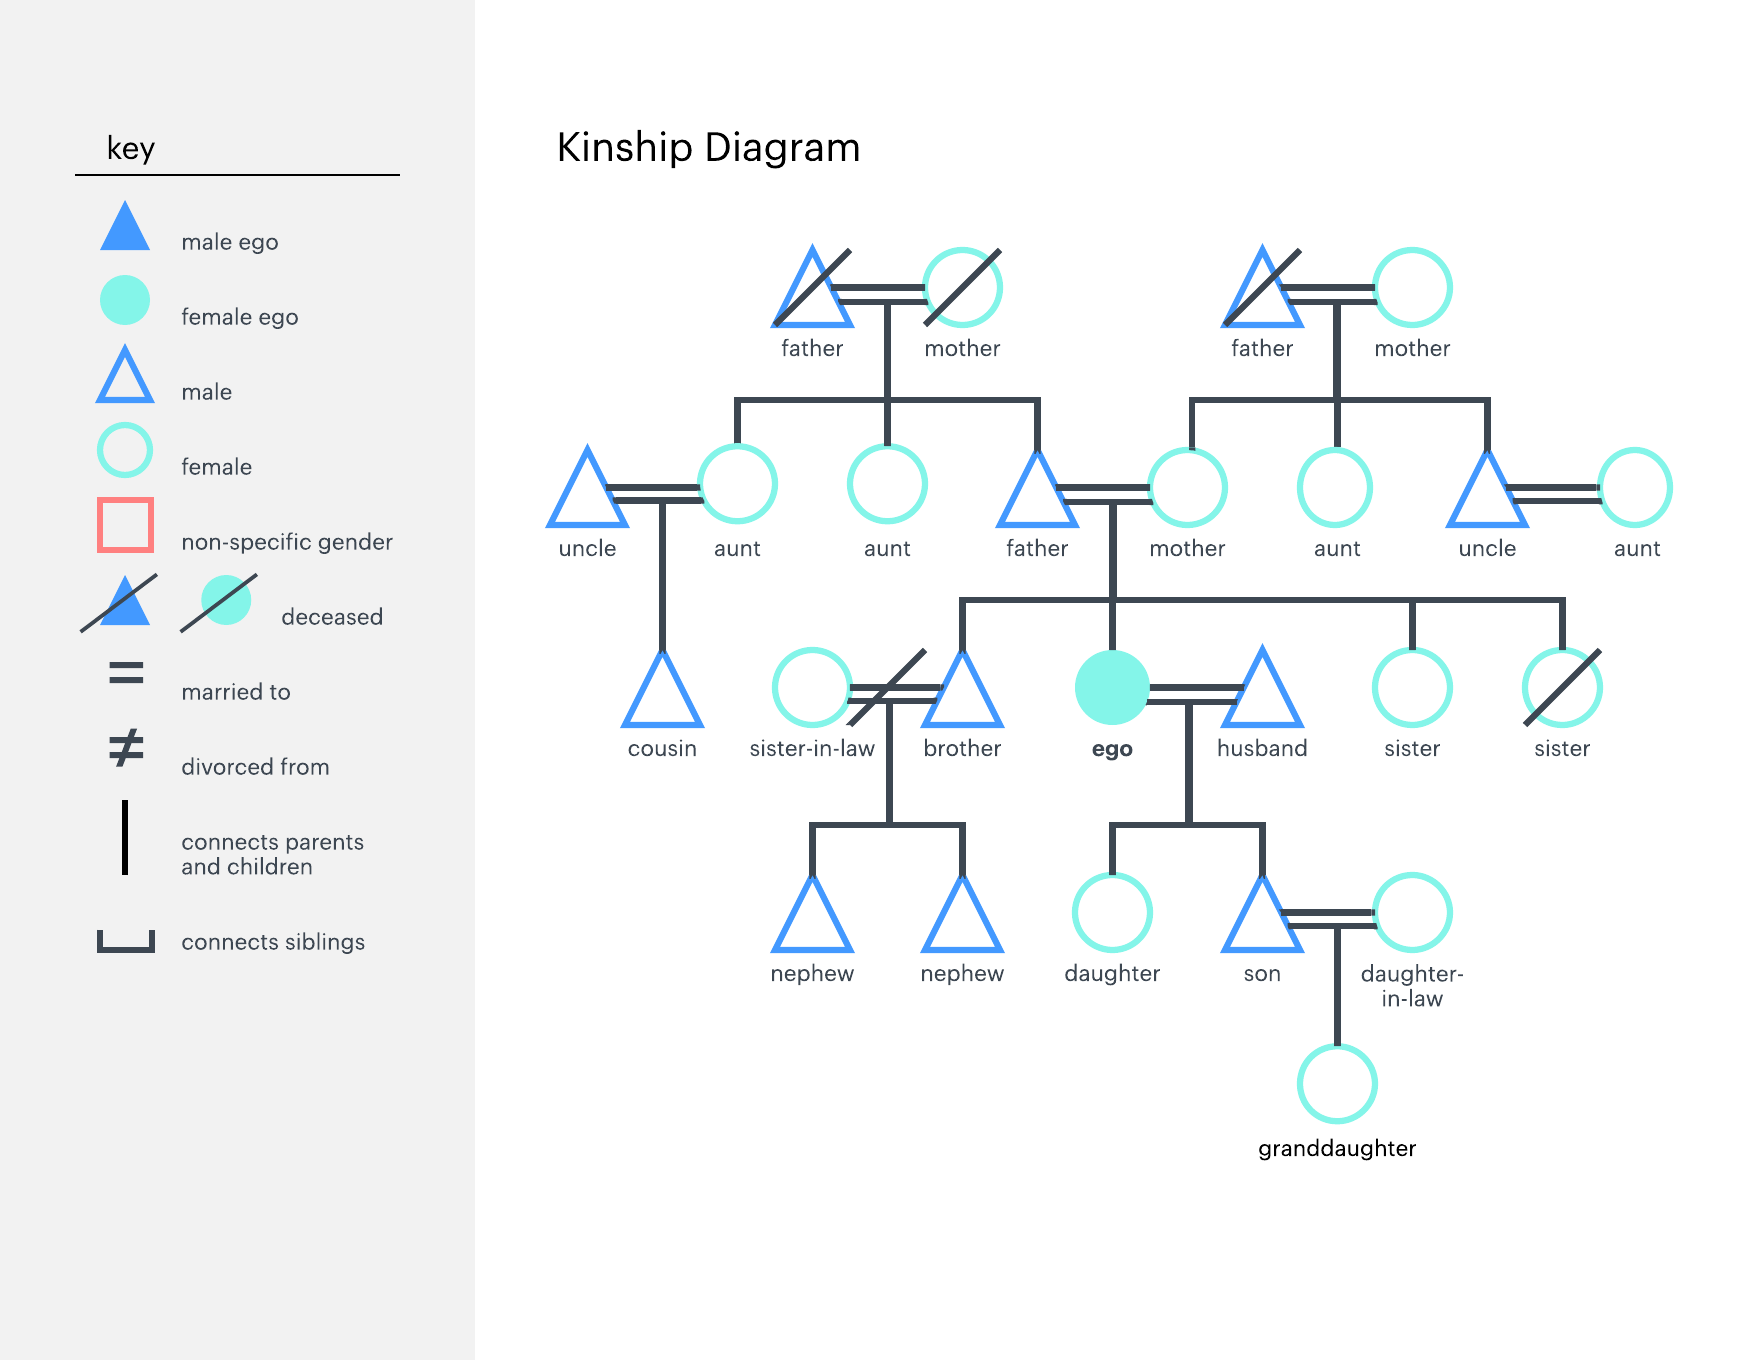 How to Make a Kinship Diagram Online | Lucidchart Blog